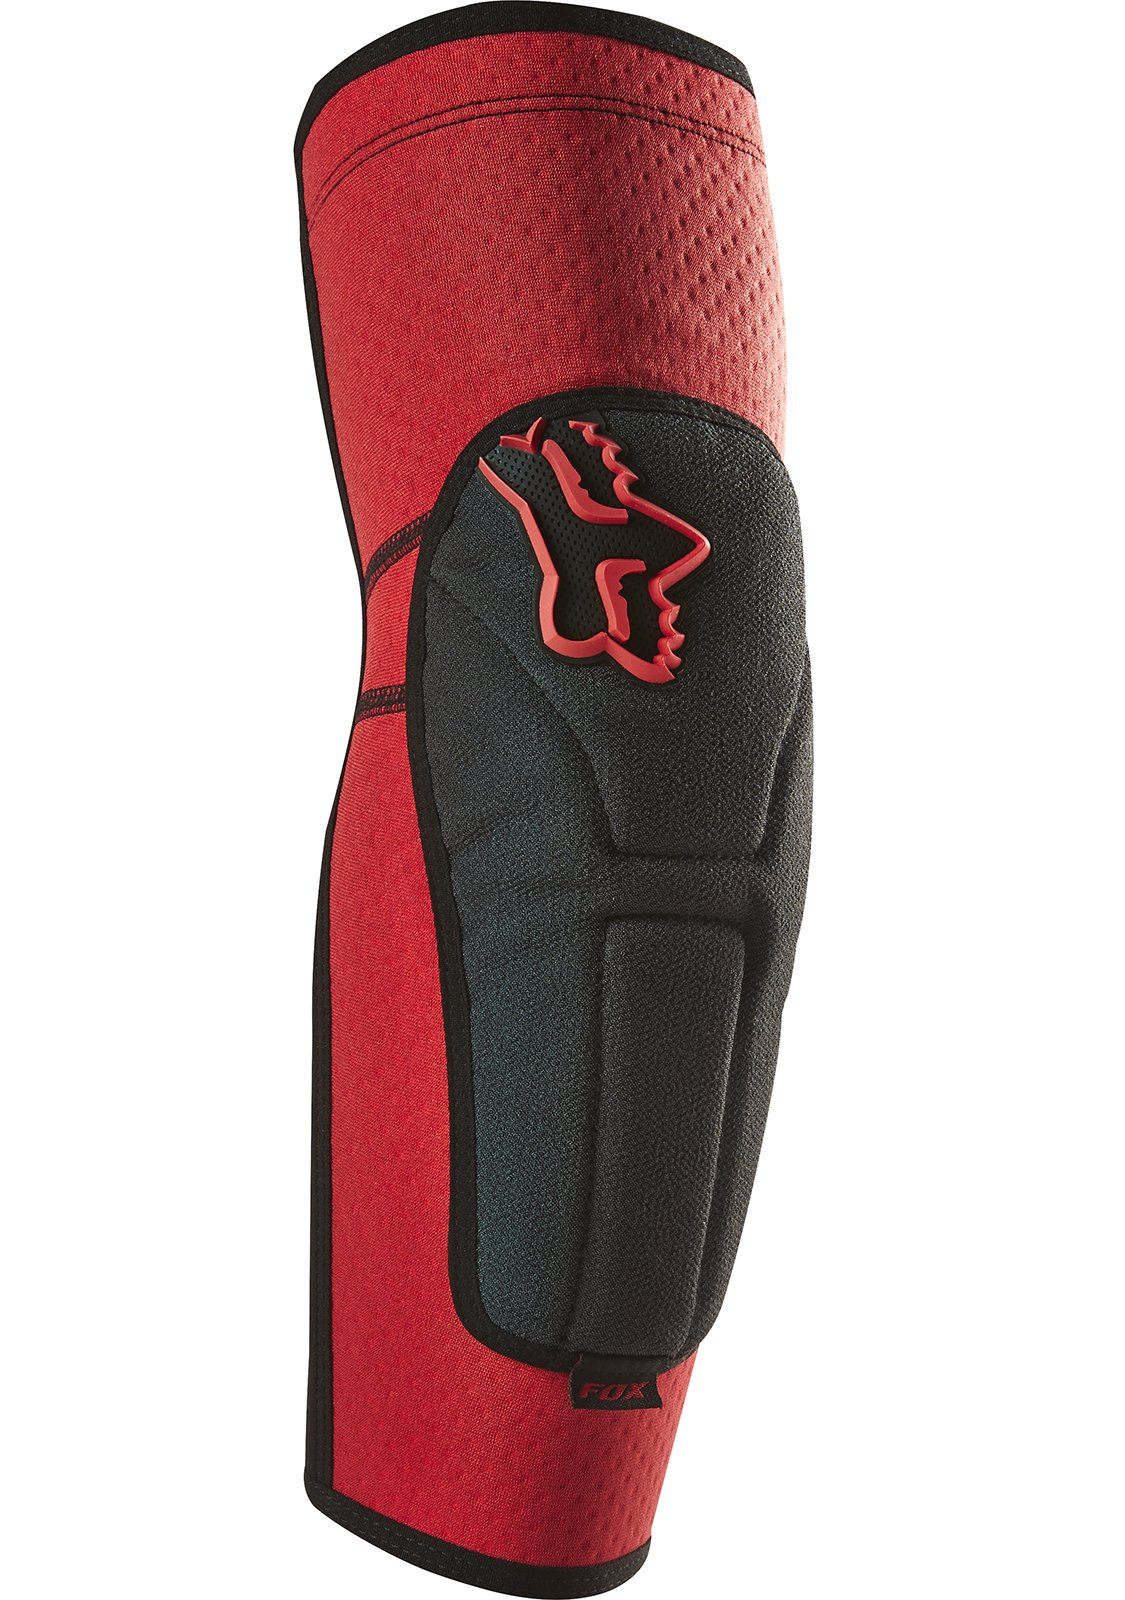 Fox Racing Launch Enduro Elbow Guards Red, XL